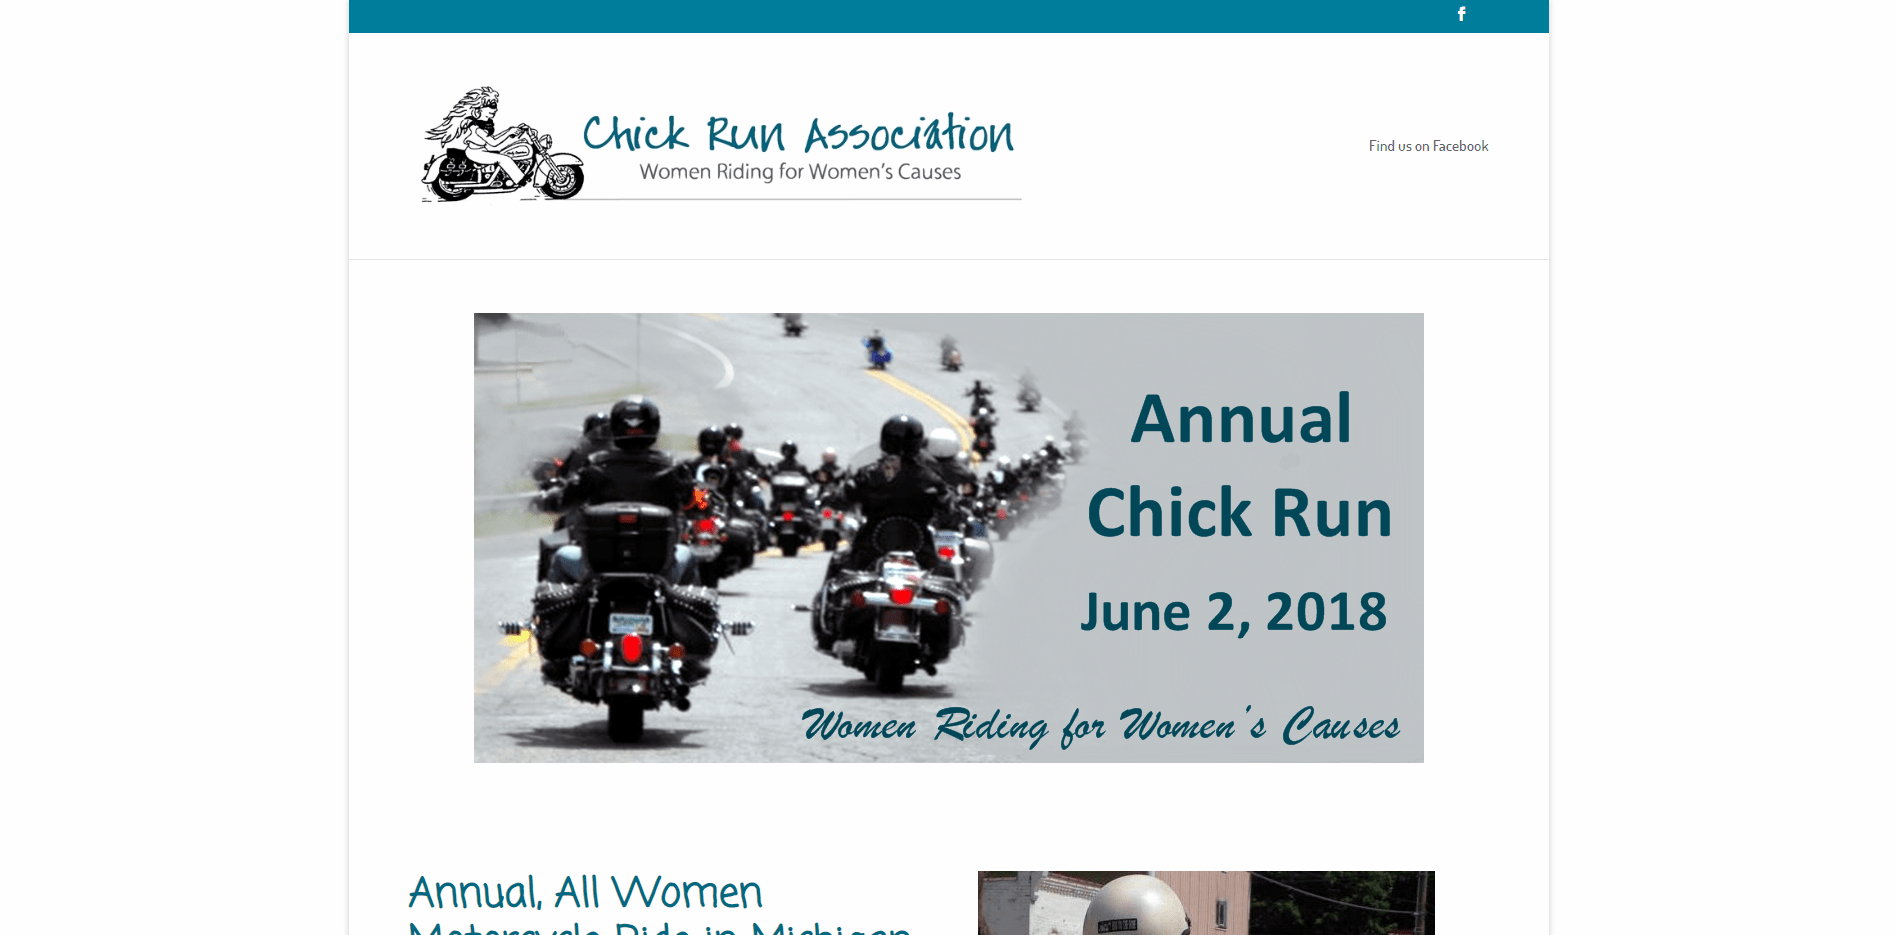 Chick Run Association - Small Business Website by Purple Gen